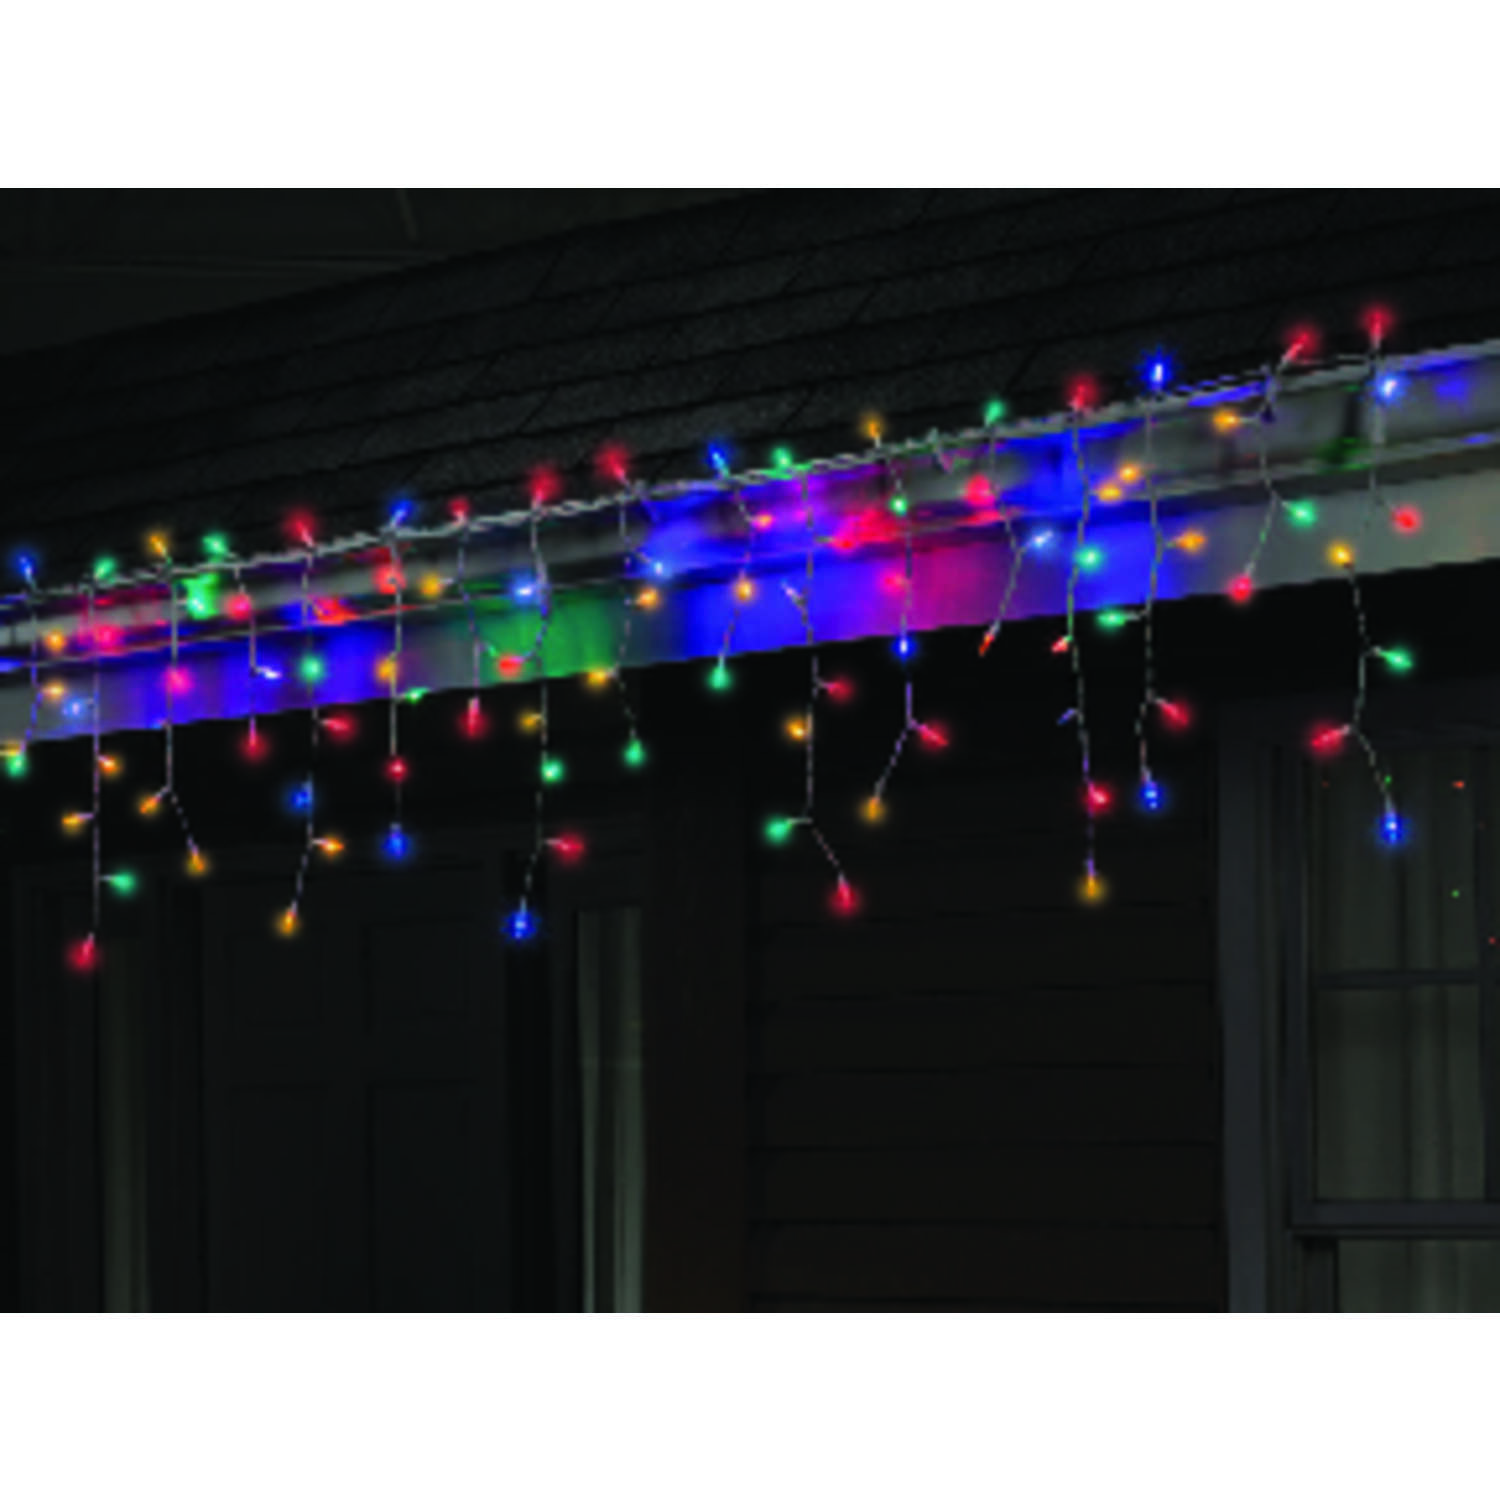 Celebrations  LED  Mini  Multi-color  100 count String  Christmas Lights  5.5 ft.